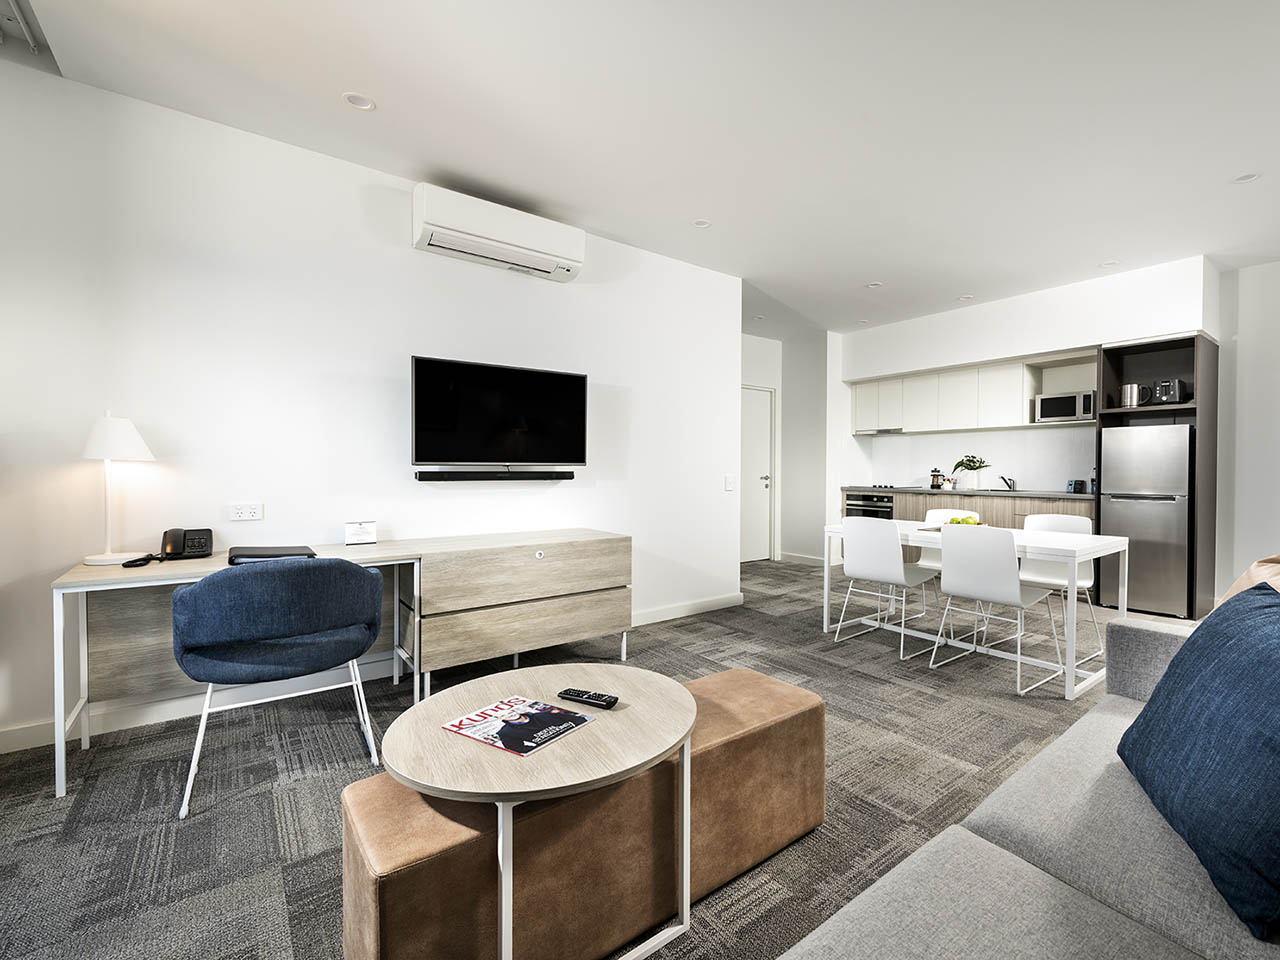 Quest Midland Room With Dining, TV Screen And Small Kitchen